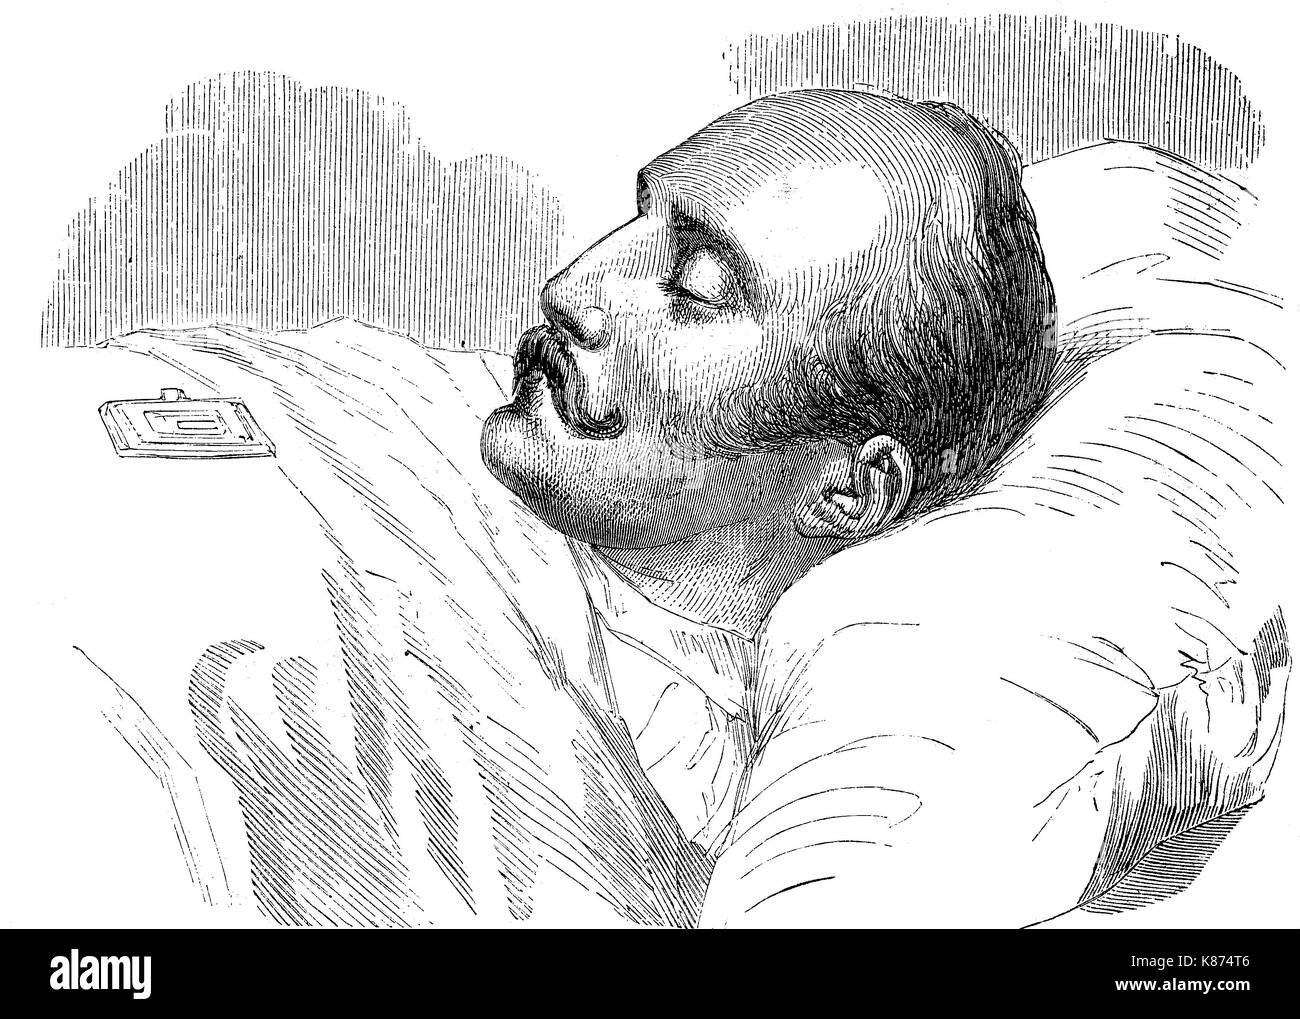 Nicholas I, 1796 - 1855, was the Emperor of Russia from 1825 until 1855, here on the deathbed, Digital improved reproduction of an original woodprint from the 19th century - Stock Image